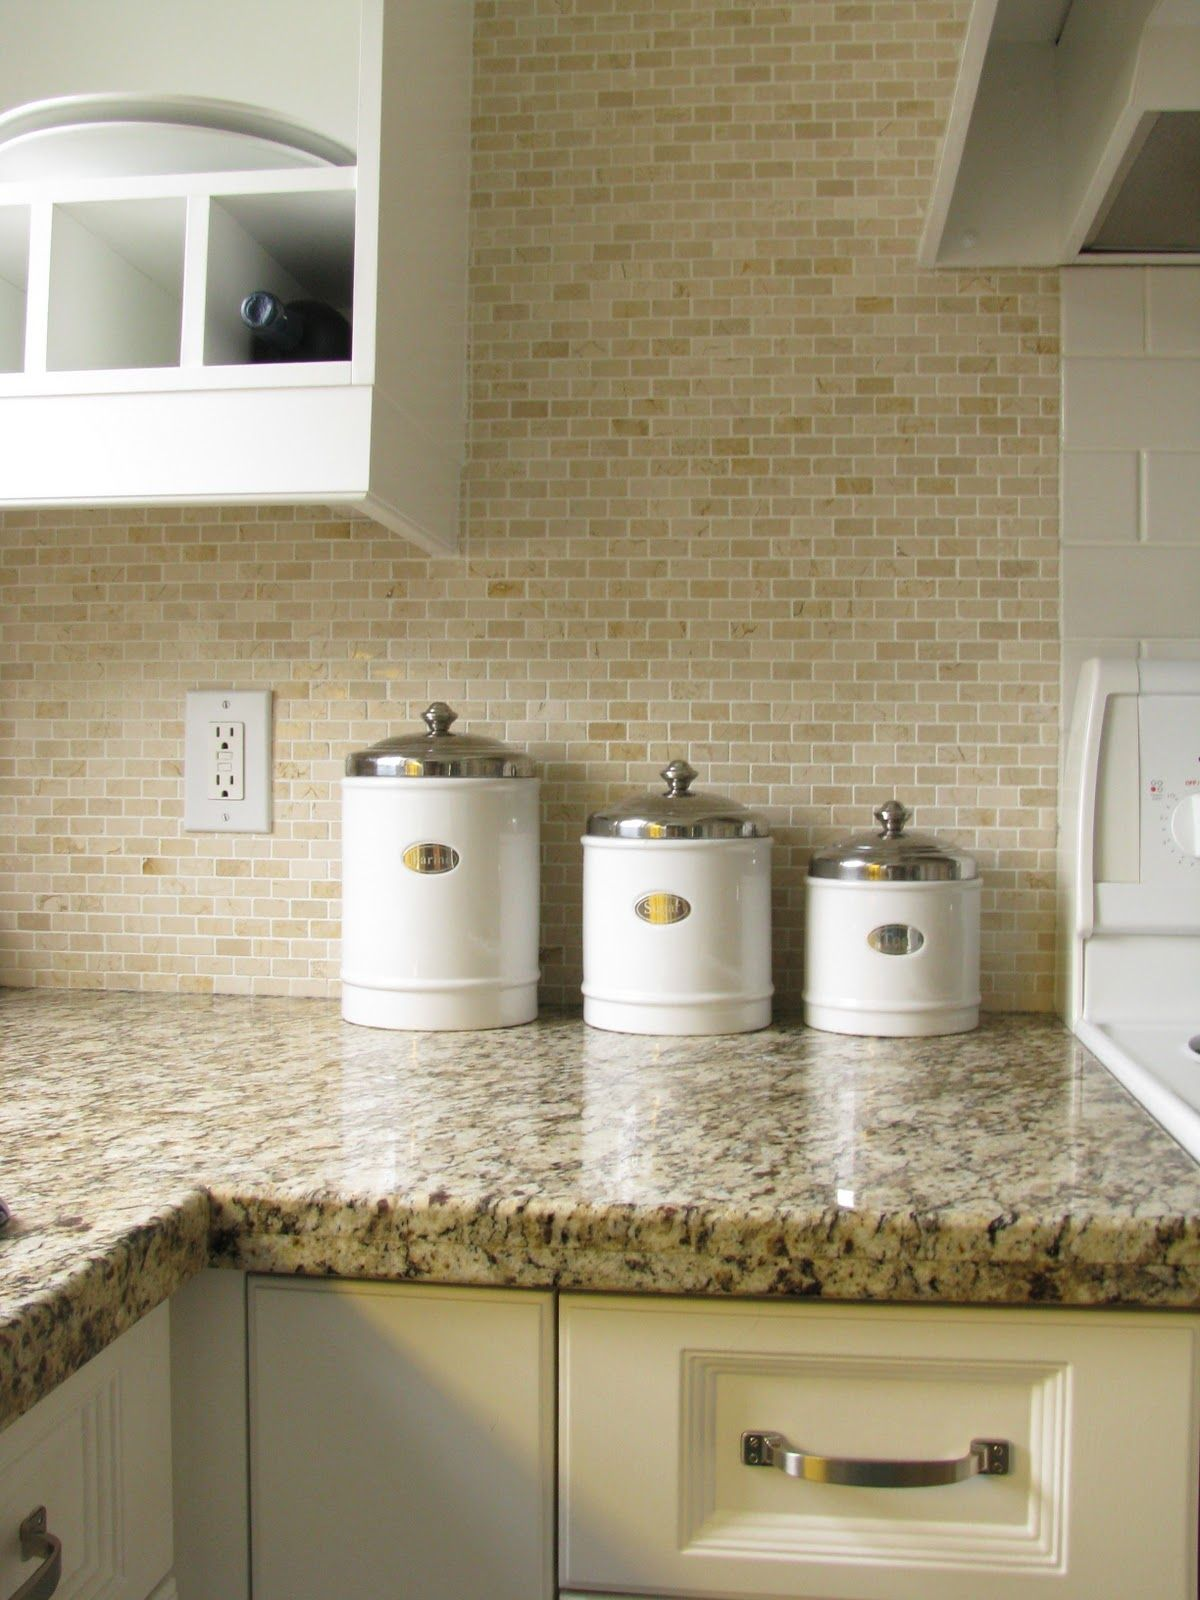 The backsplash is Crema Marfil marble It gives such a French look to the kitchen with the fresh white cabinets Observe the backsplash large subway